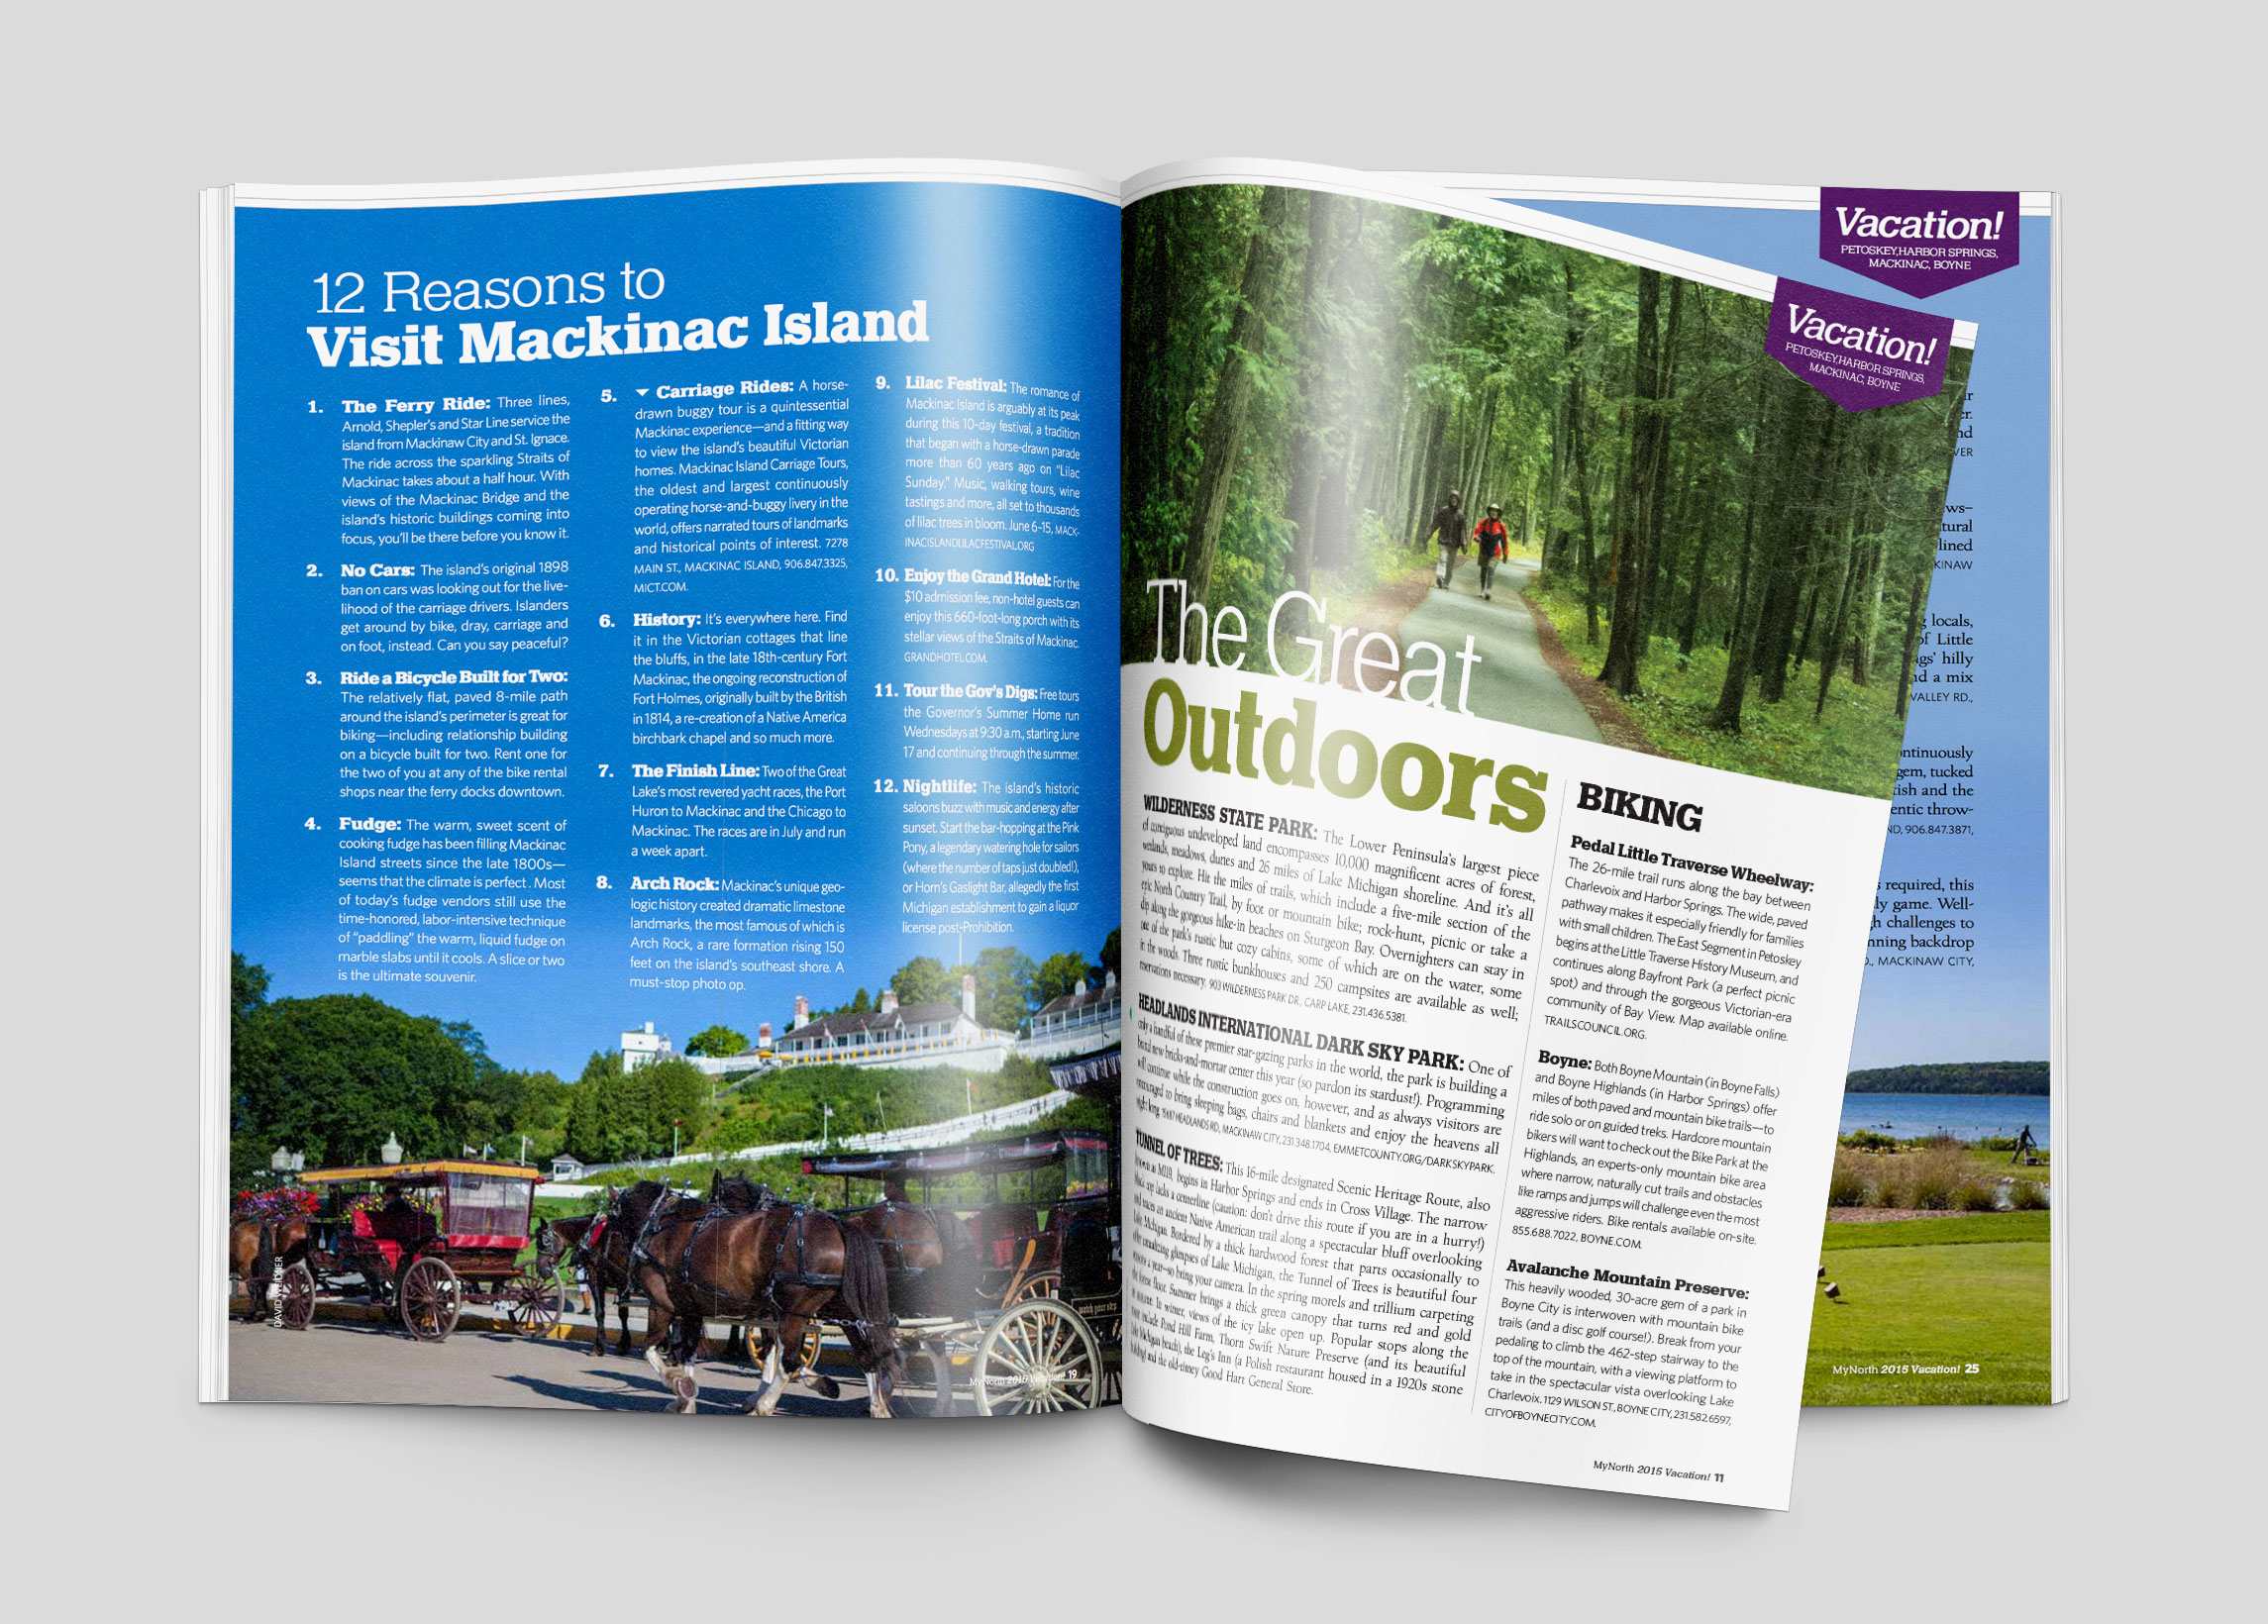 VacationGuide_MackinacOutdoors.jpg